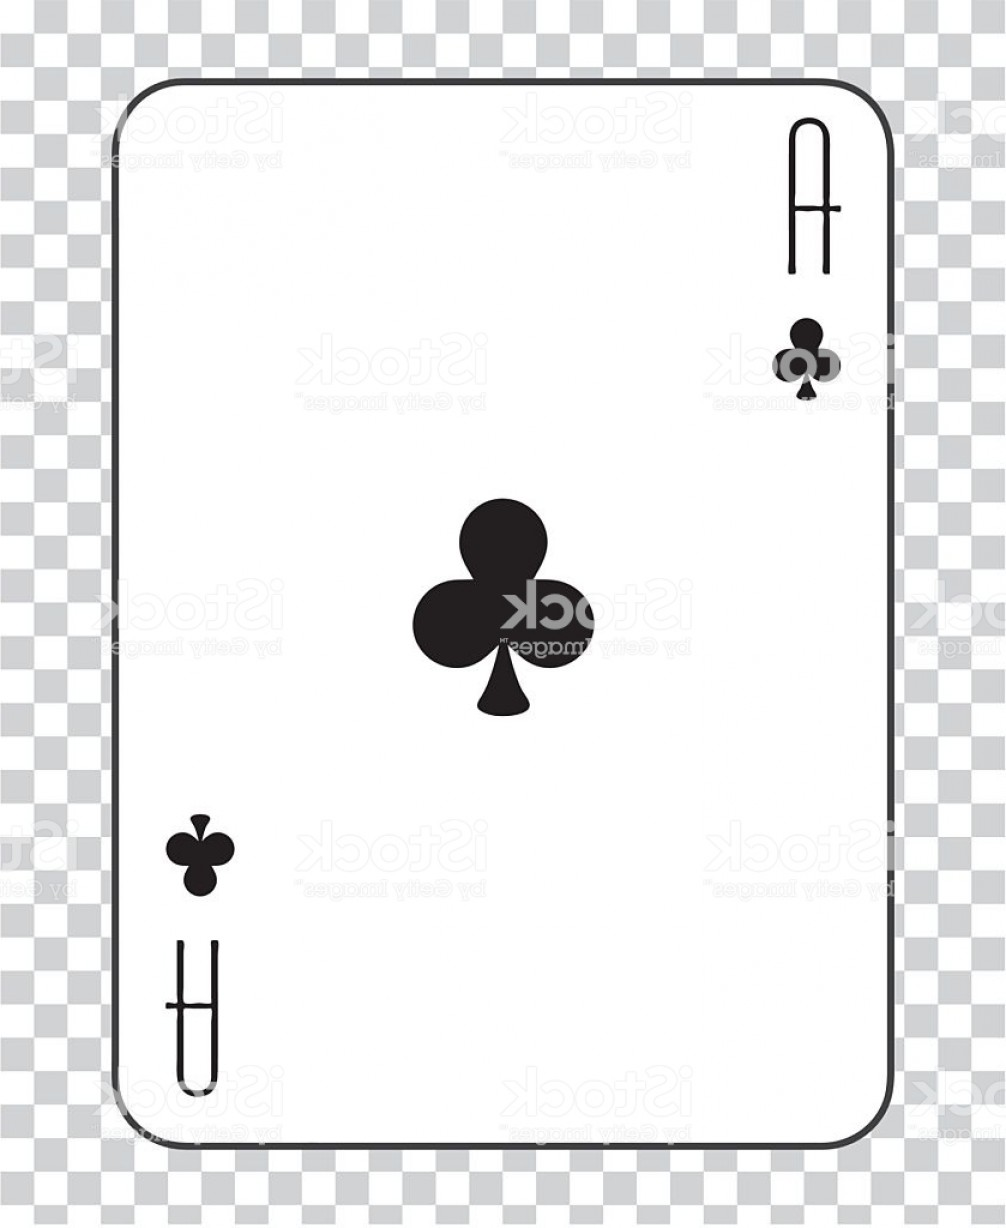 Single Playing Card Vector: Single Playing Cards Vector Ace Clubs Gm